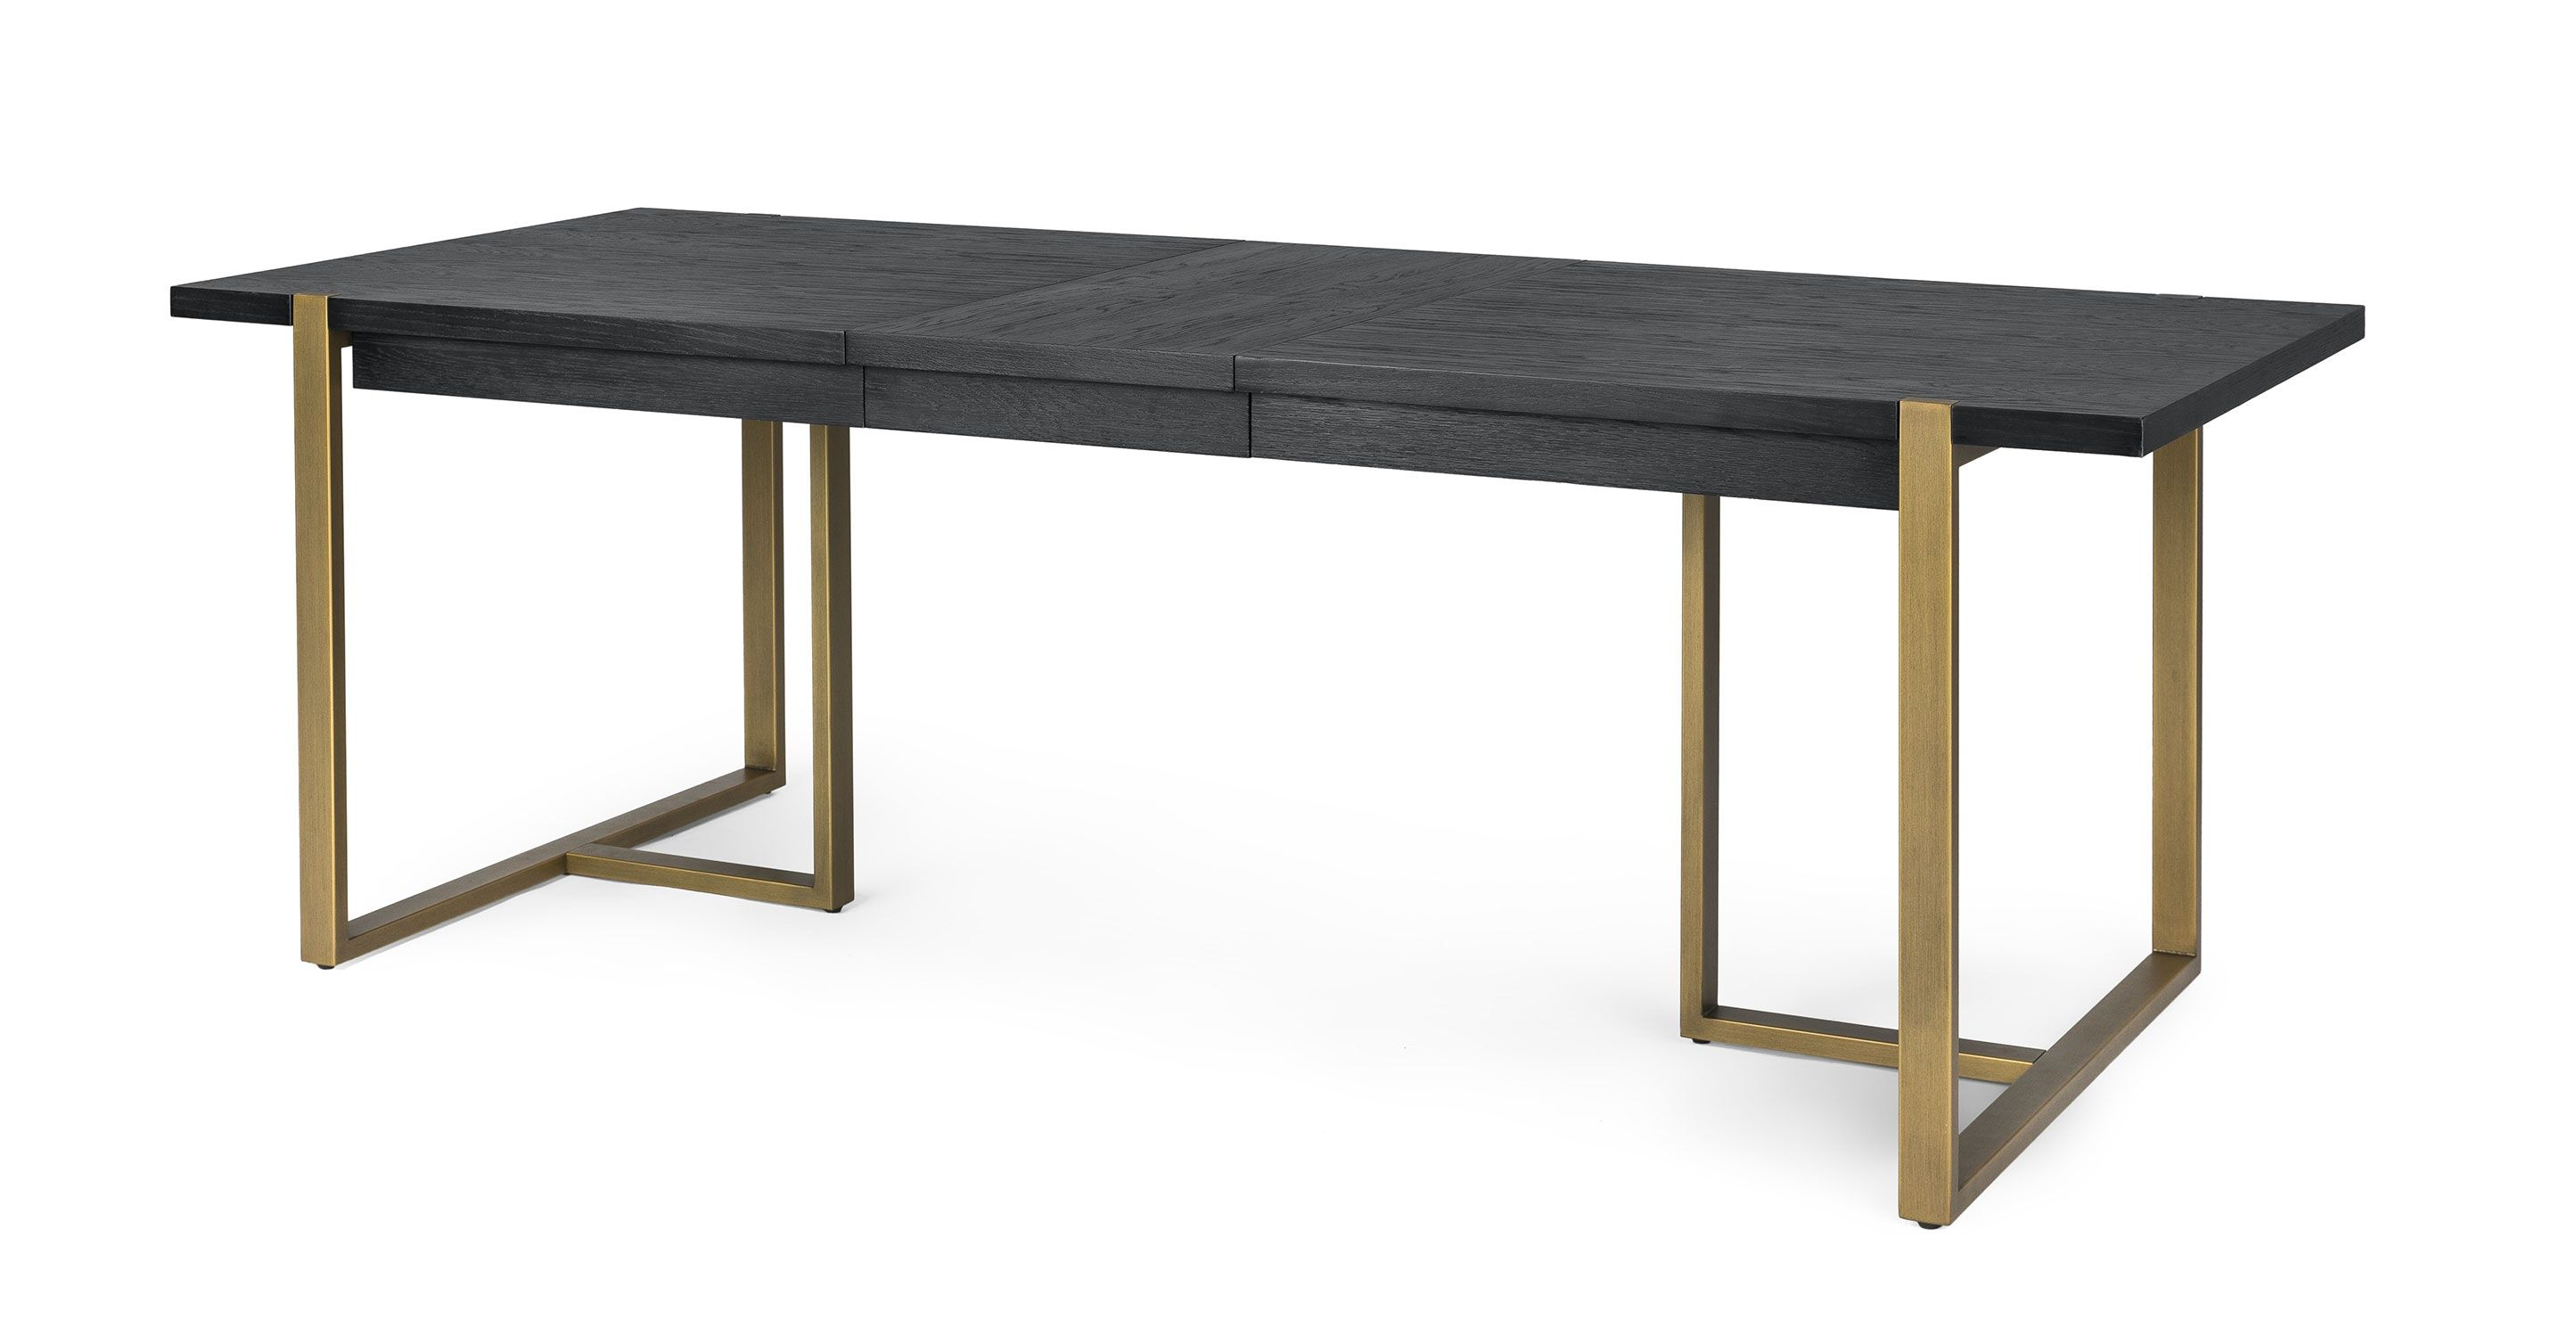 Extendable Dining Table Brass Legs Seats 8 10 Article Oscuro